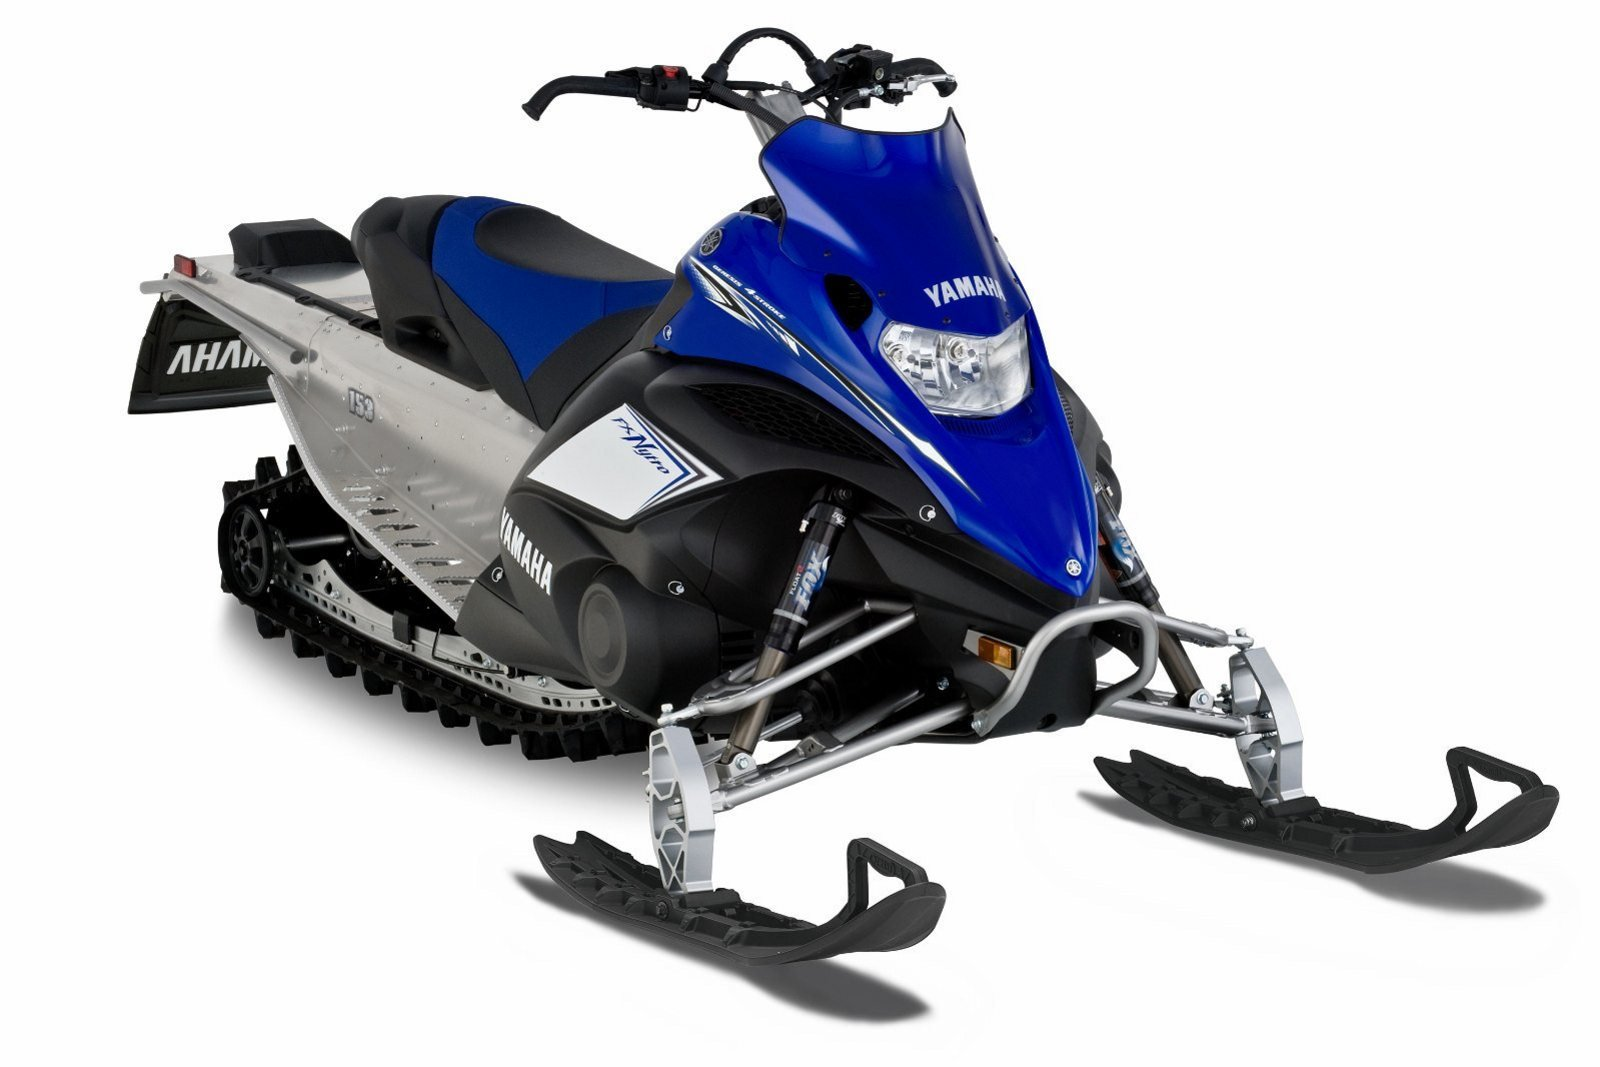 2012 Yamaha Fx Nytro Mtx 153 Review Top Speed